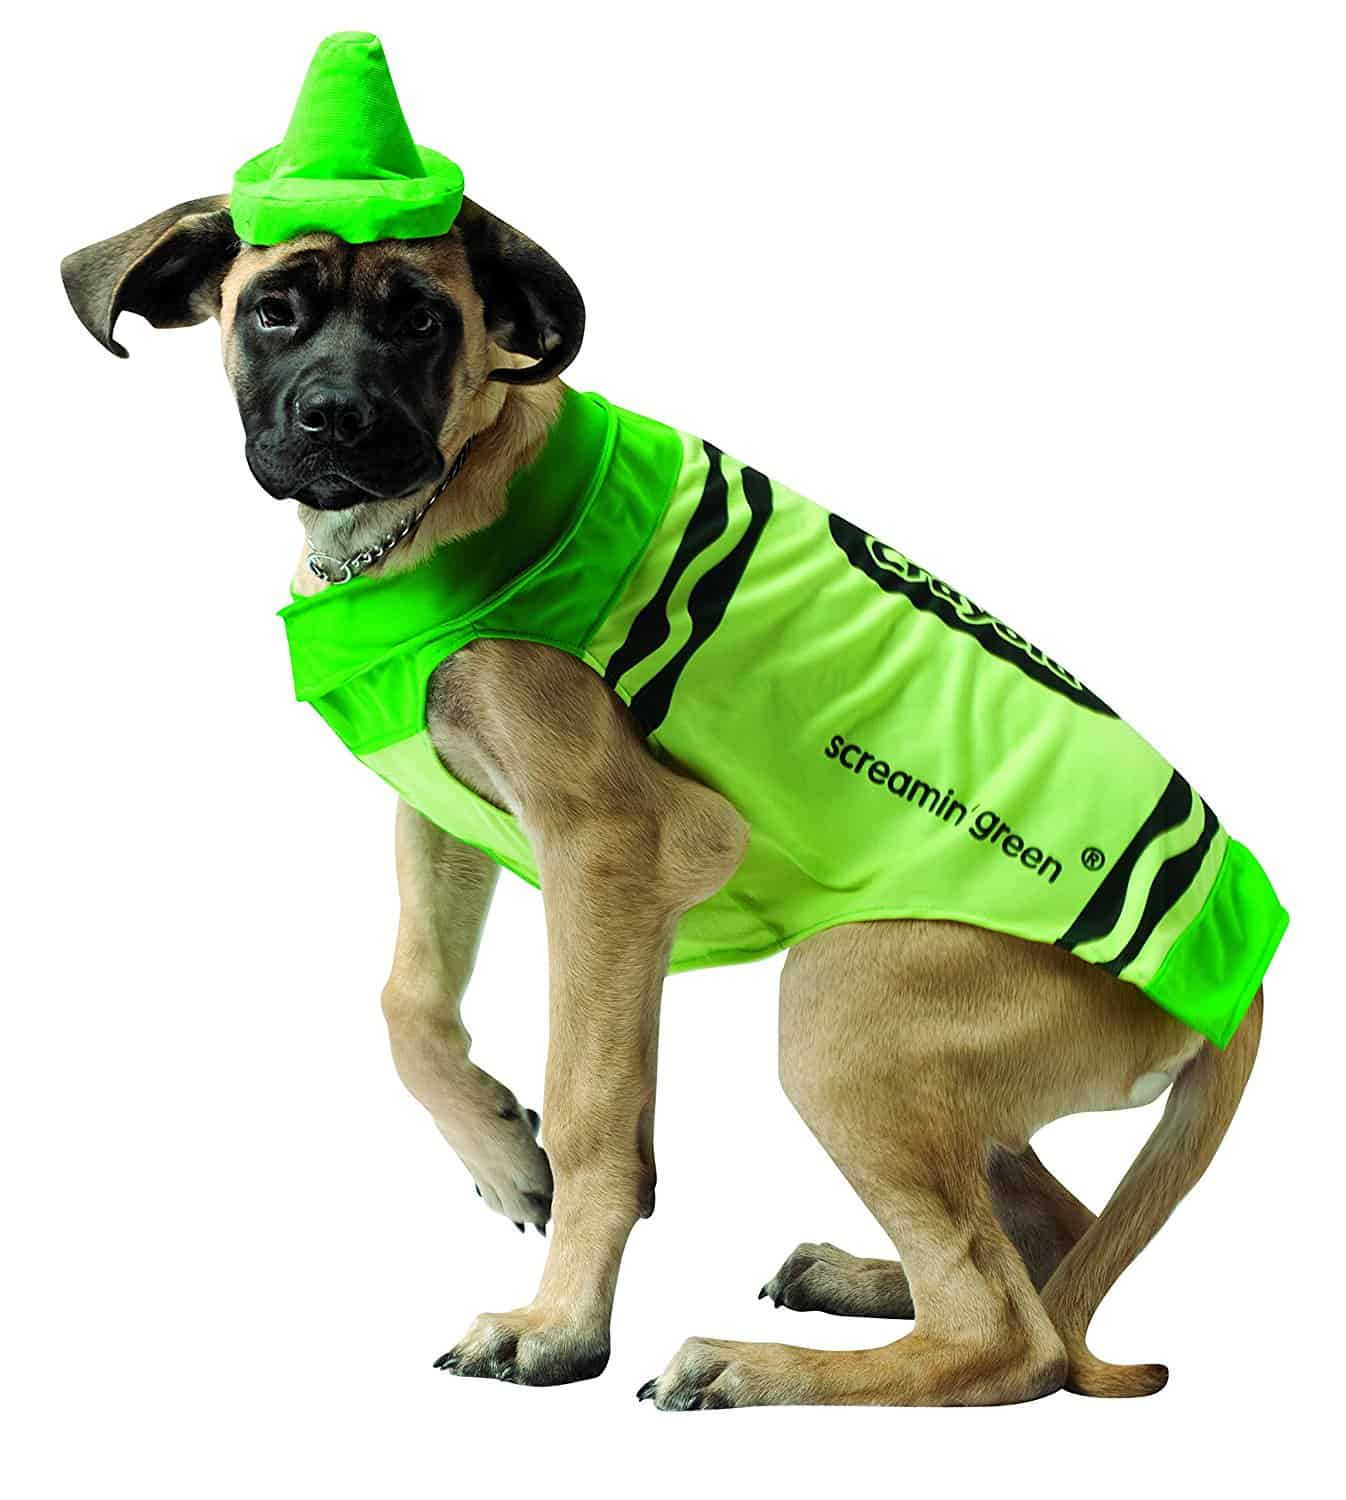 Big white dog in a green crayon costume